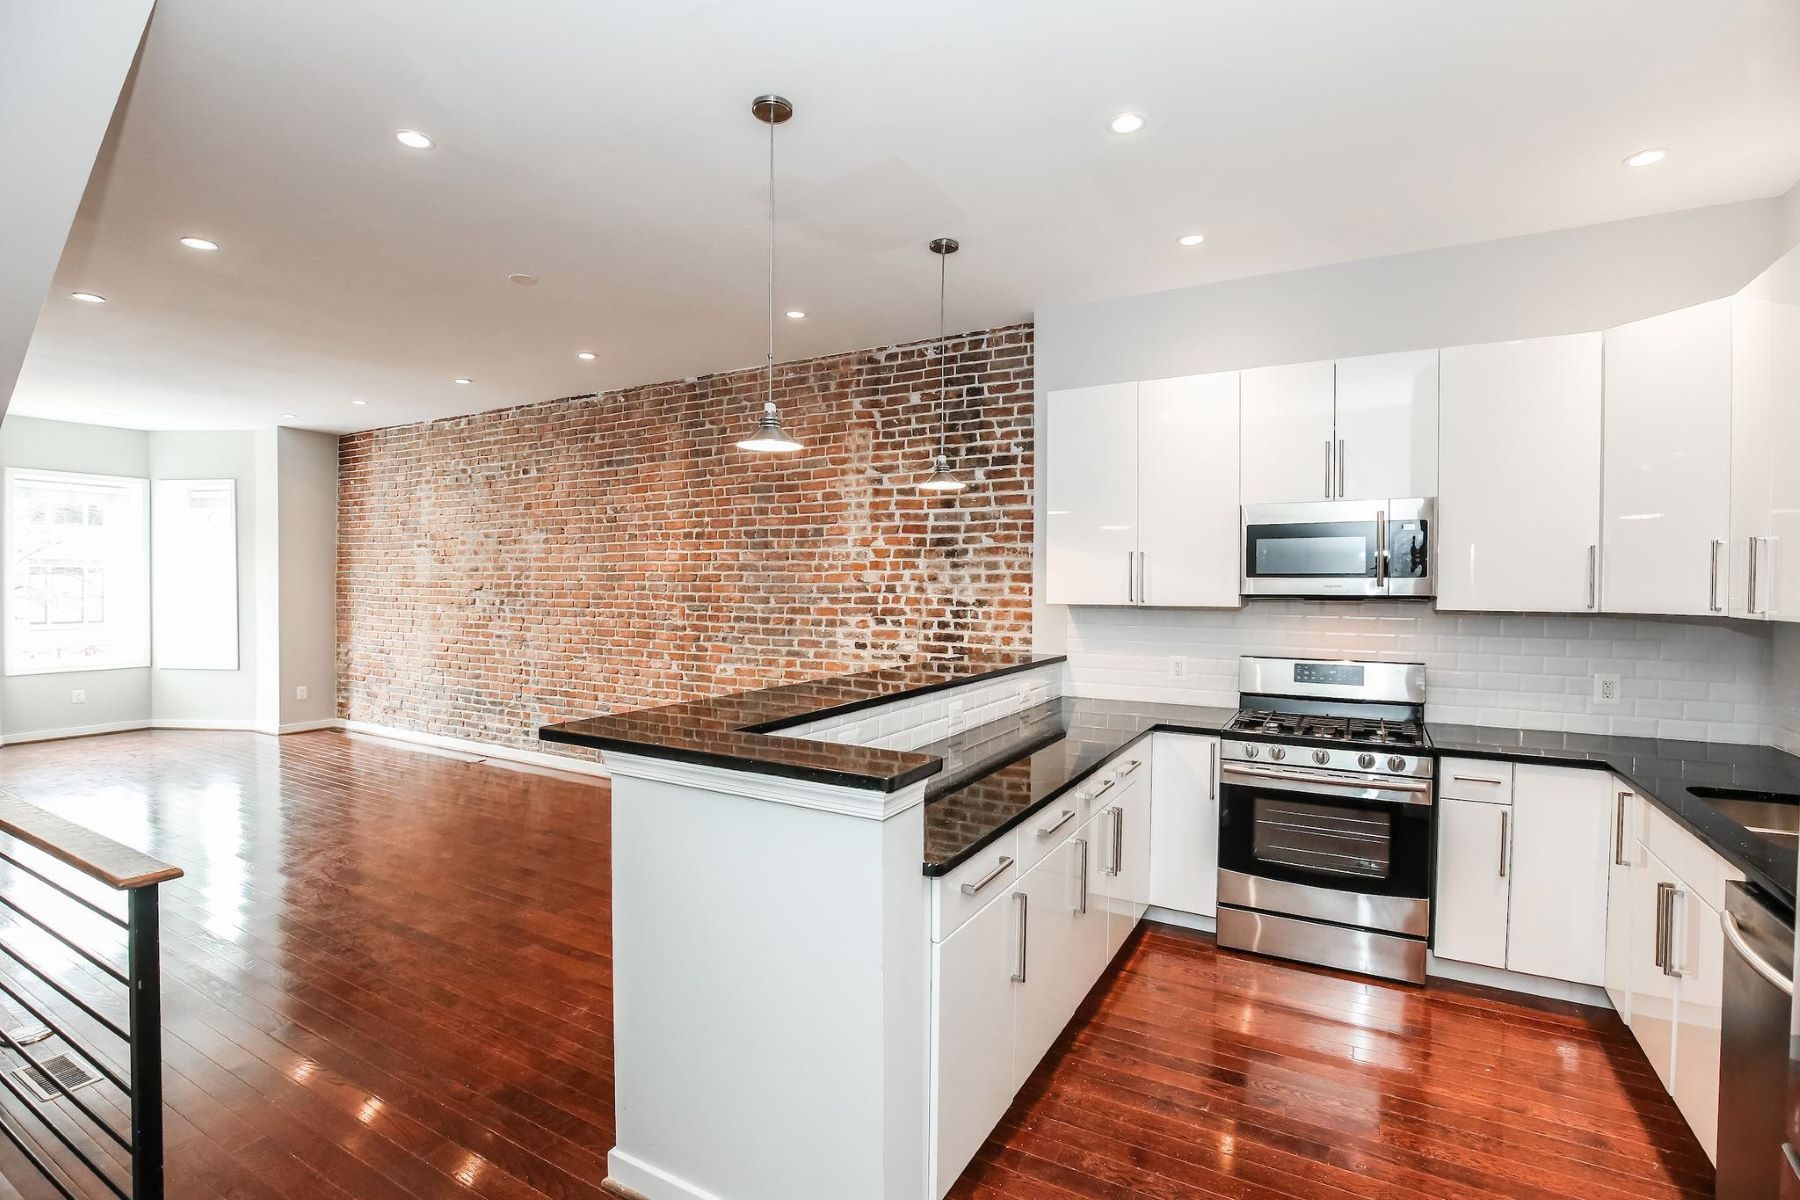 Condominium for Rent at 1616 6th St Nw #1 1616 6th St Nw #1 Washington, District Of Columbia 20001 United States